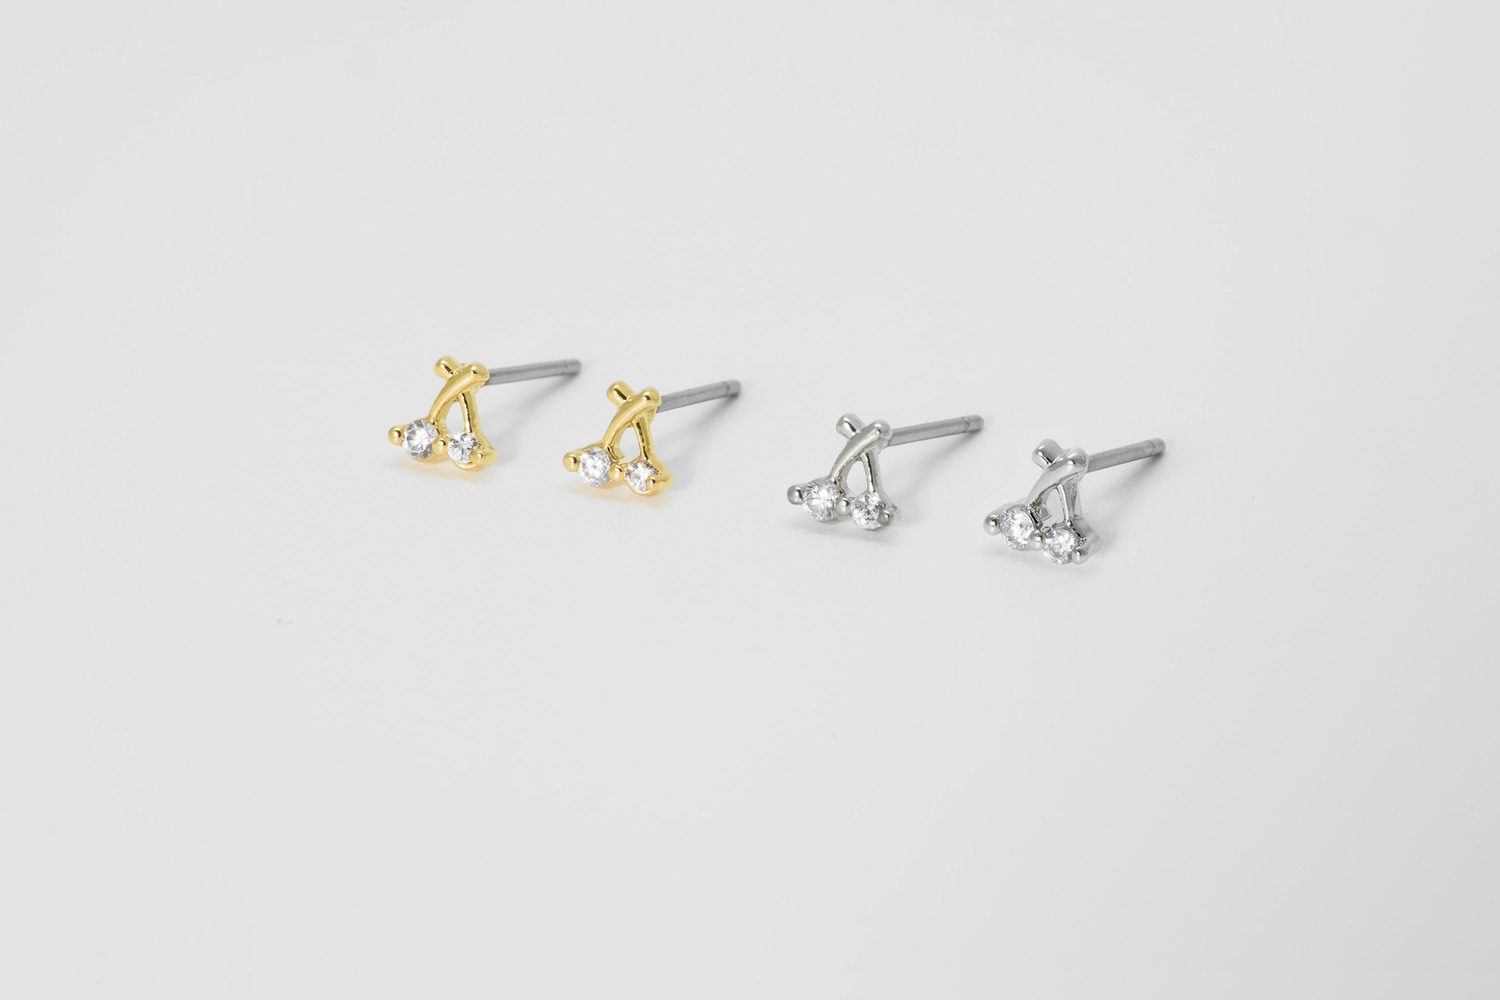 [EB20-33] Tiny cubic cherry stud earring, Brass, CZ, Nickel free, Handmade jewelry, Post earrings, Earring stud (D4-G10, D4-G10R)